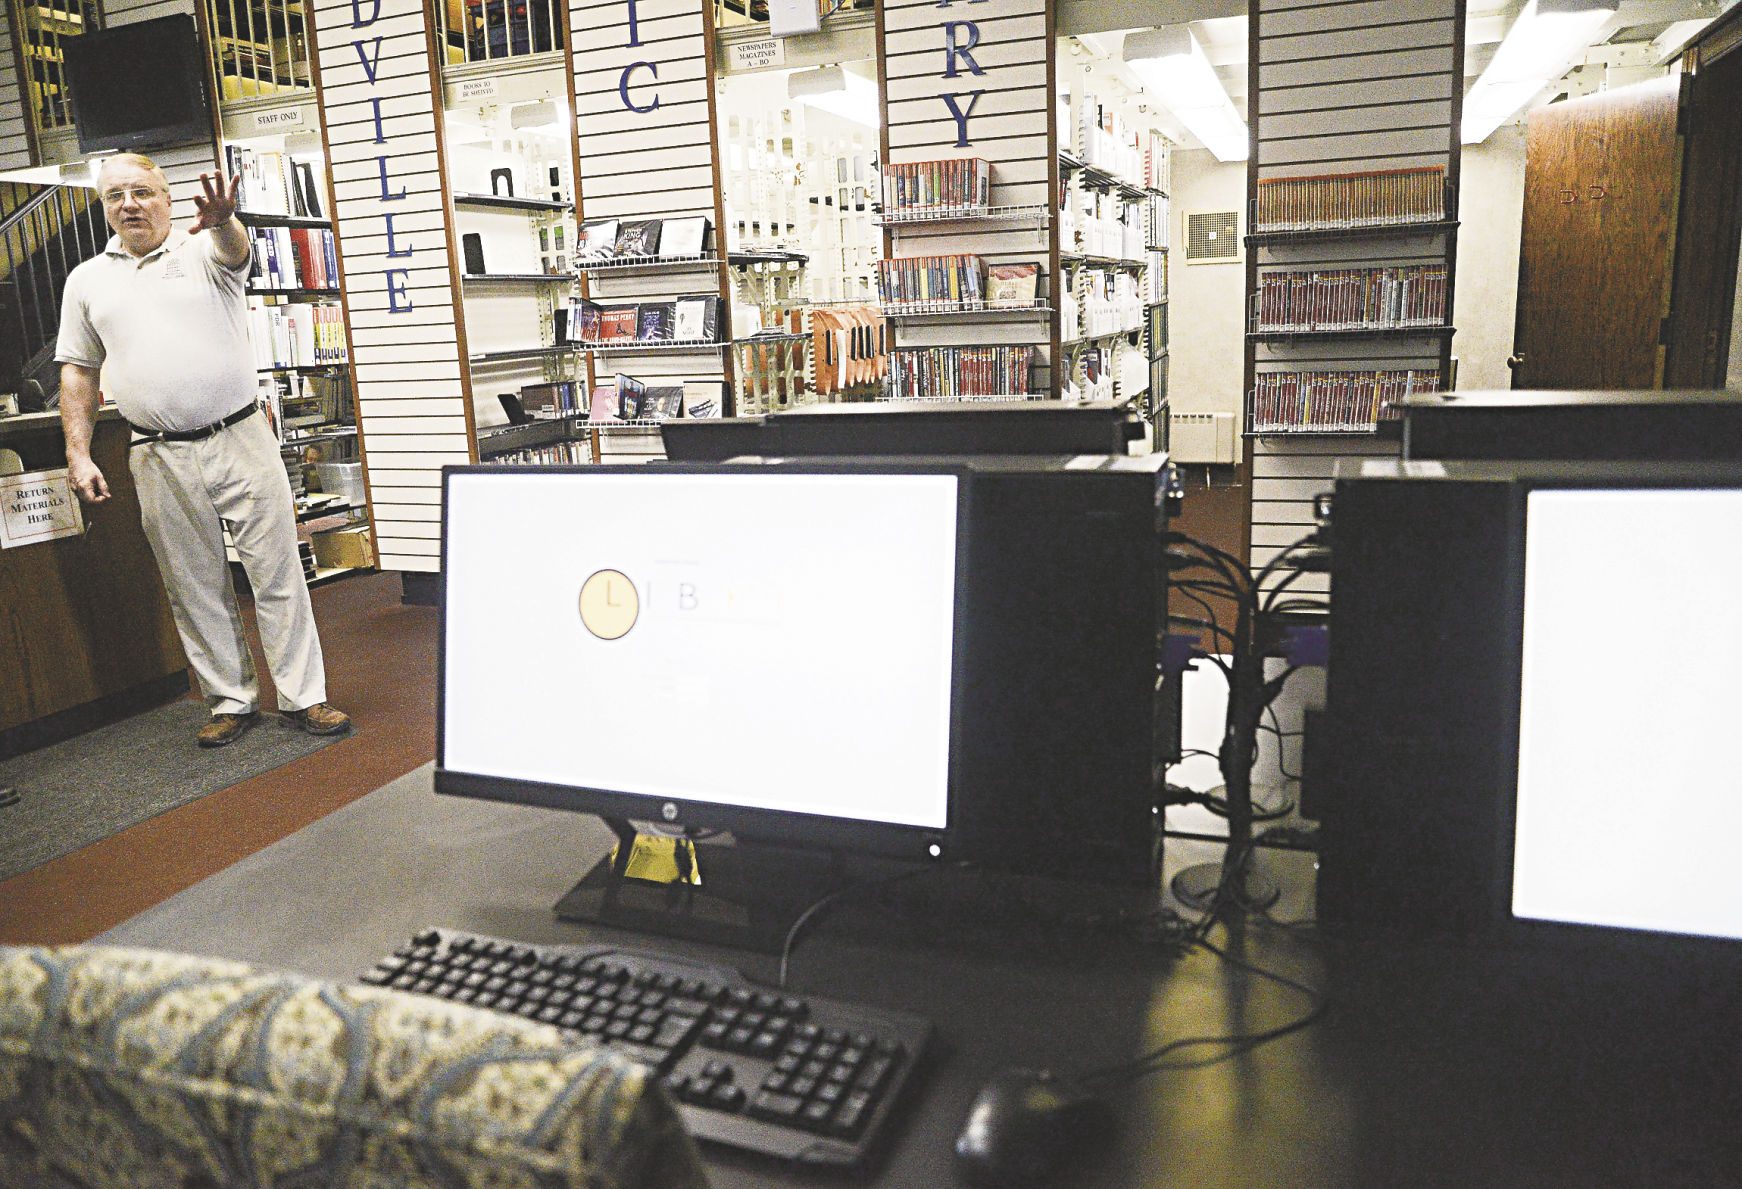 Posh Meadville Library Reopening Section John Executive Director Numerous Improvements Following Meadville Public Motions To Newly Remodeled Computer Area houzz 01 Meadville Public Library